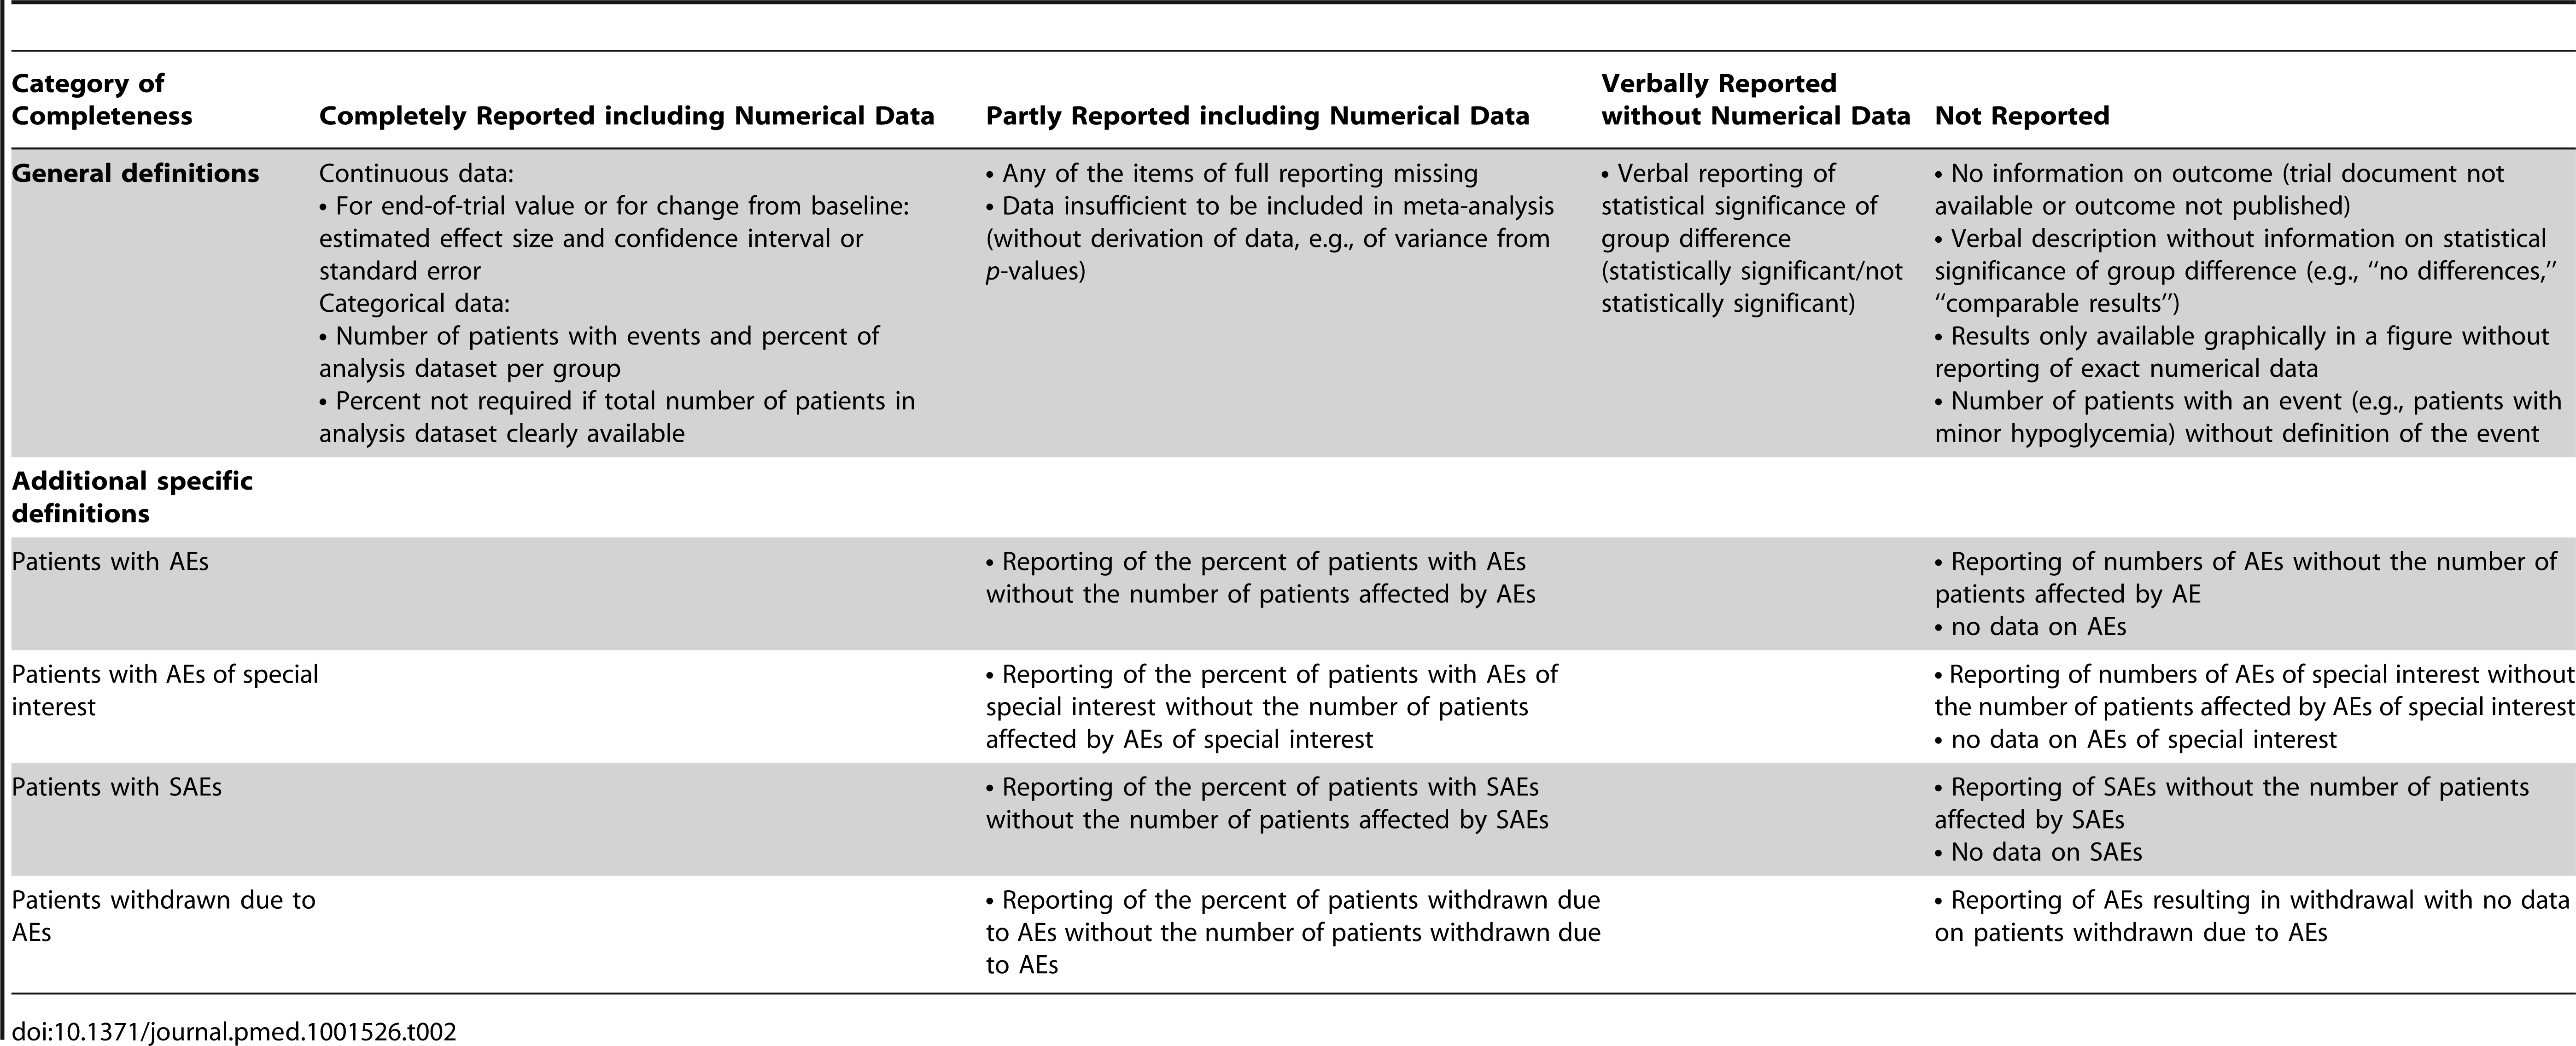 Coding of completeness of reporting of trial outcomes.